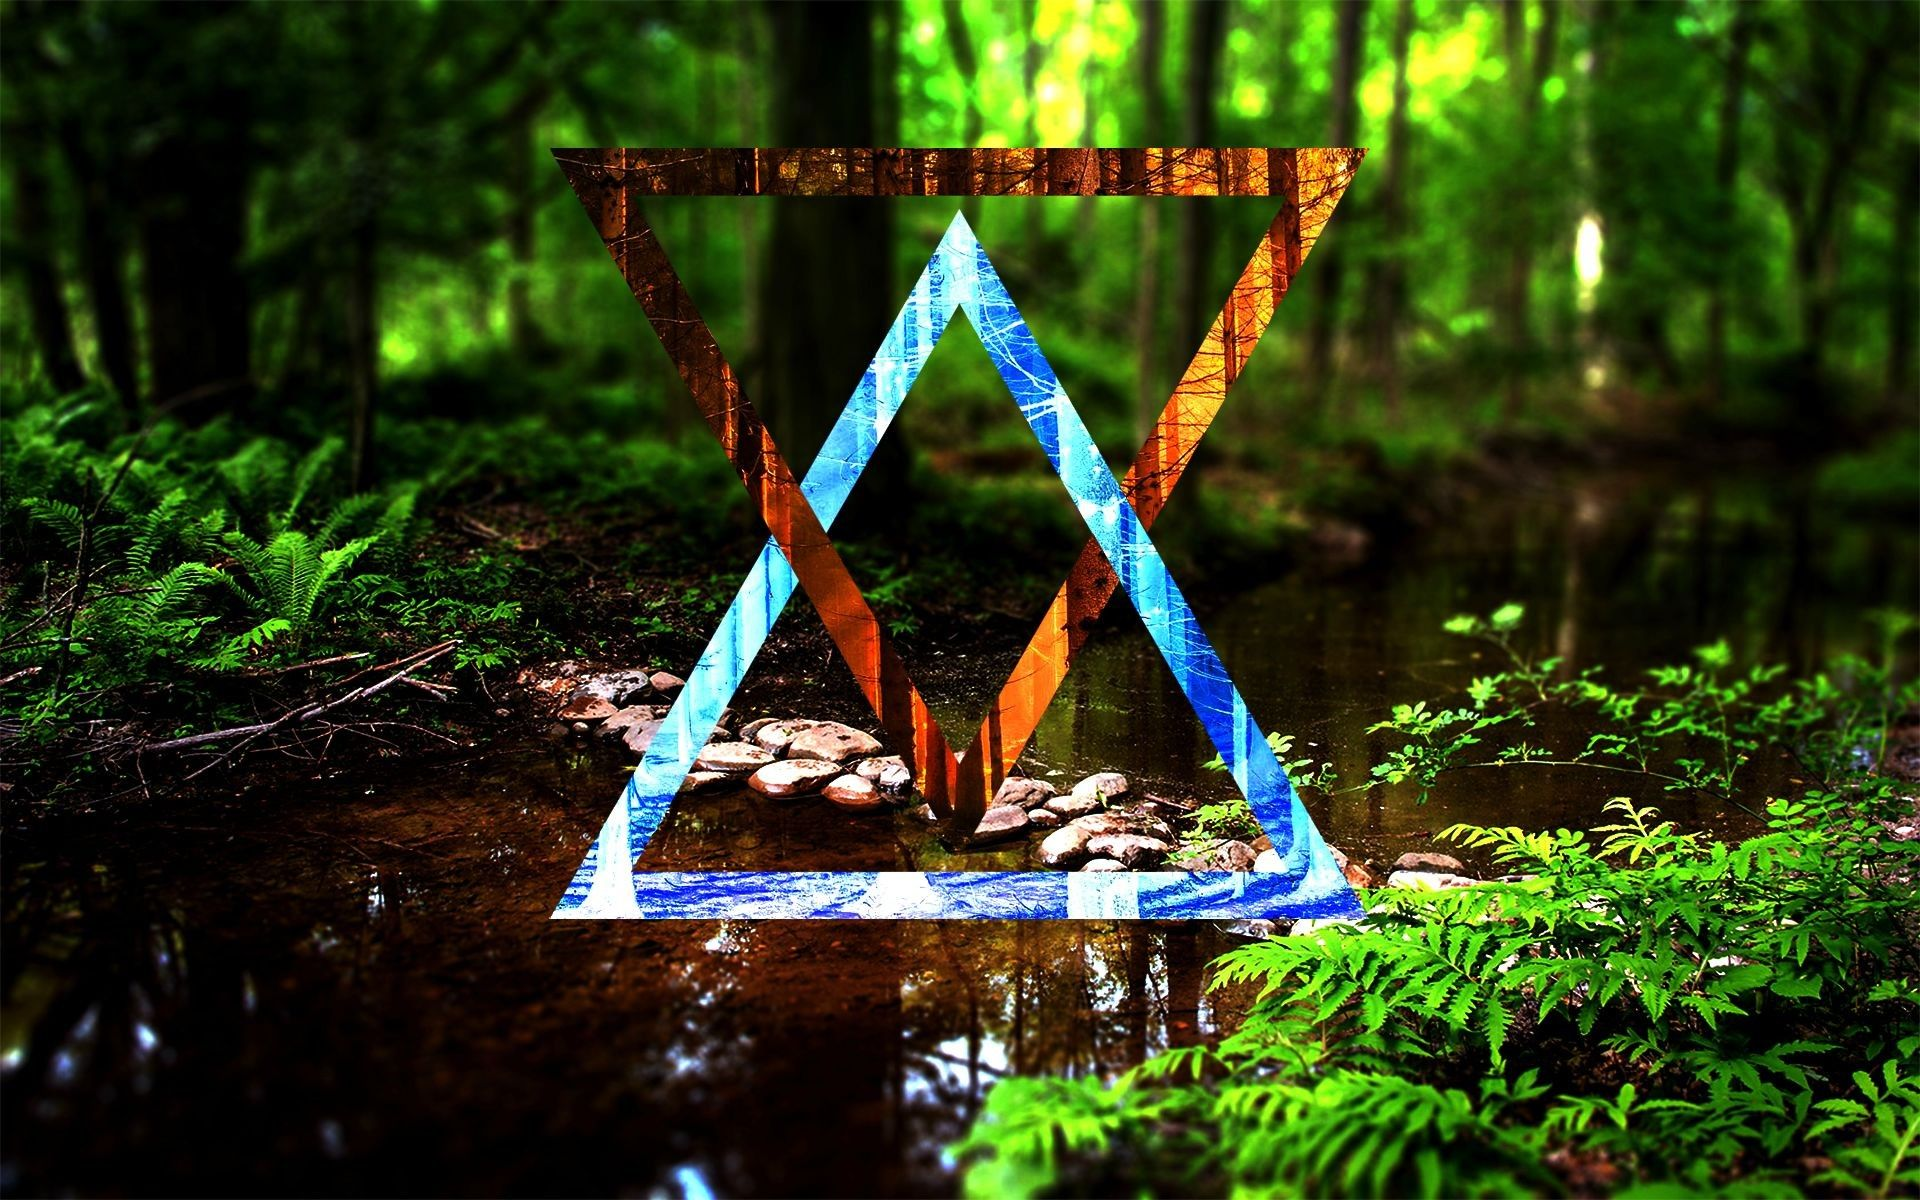 1920x1200 2963382 abstract forest triangle digital art nature ...